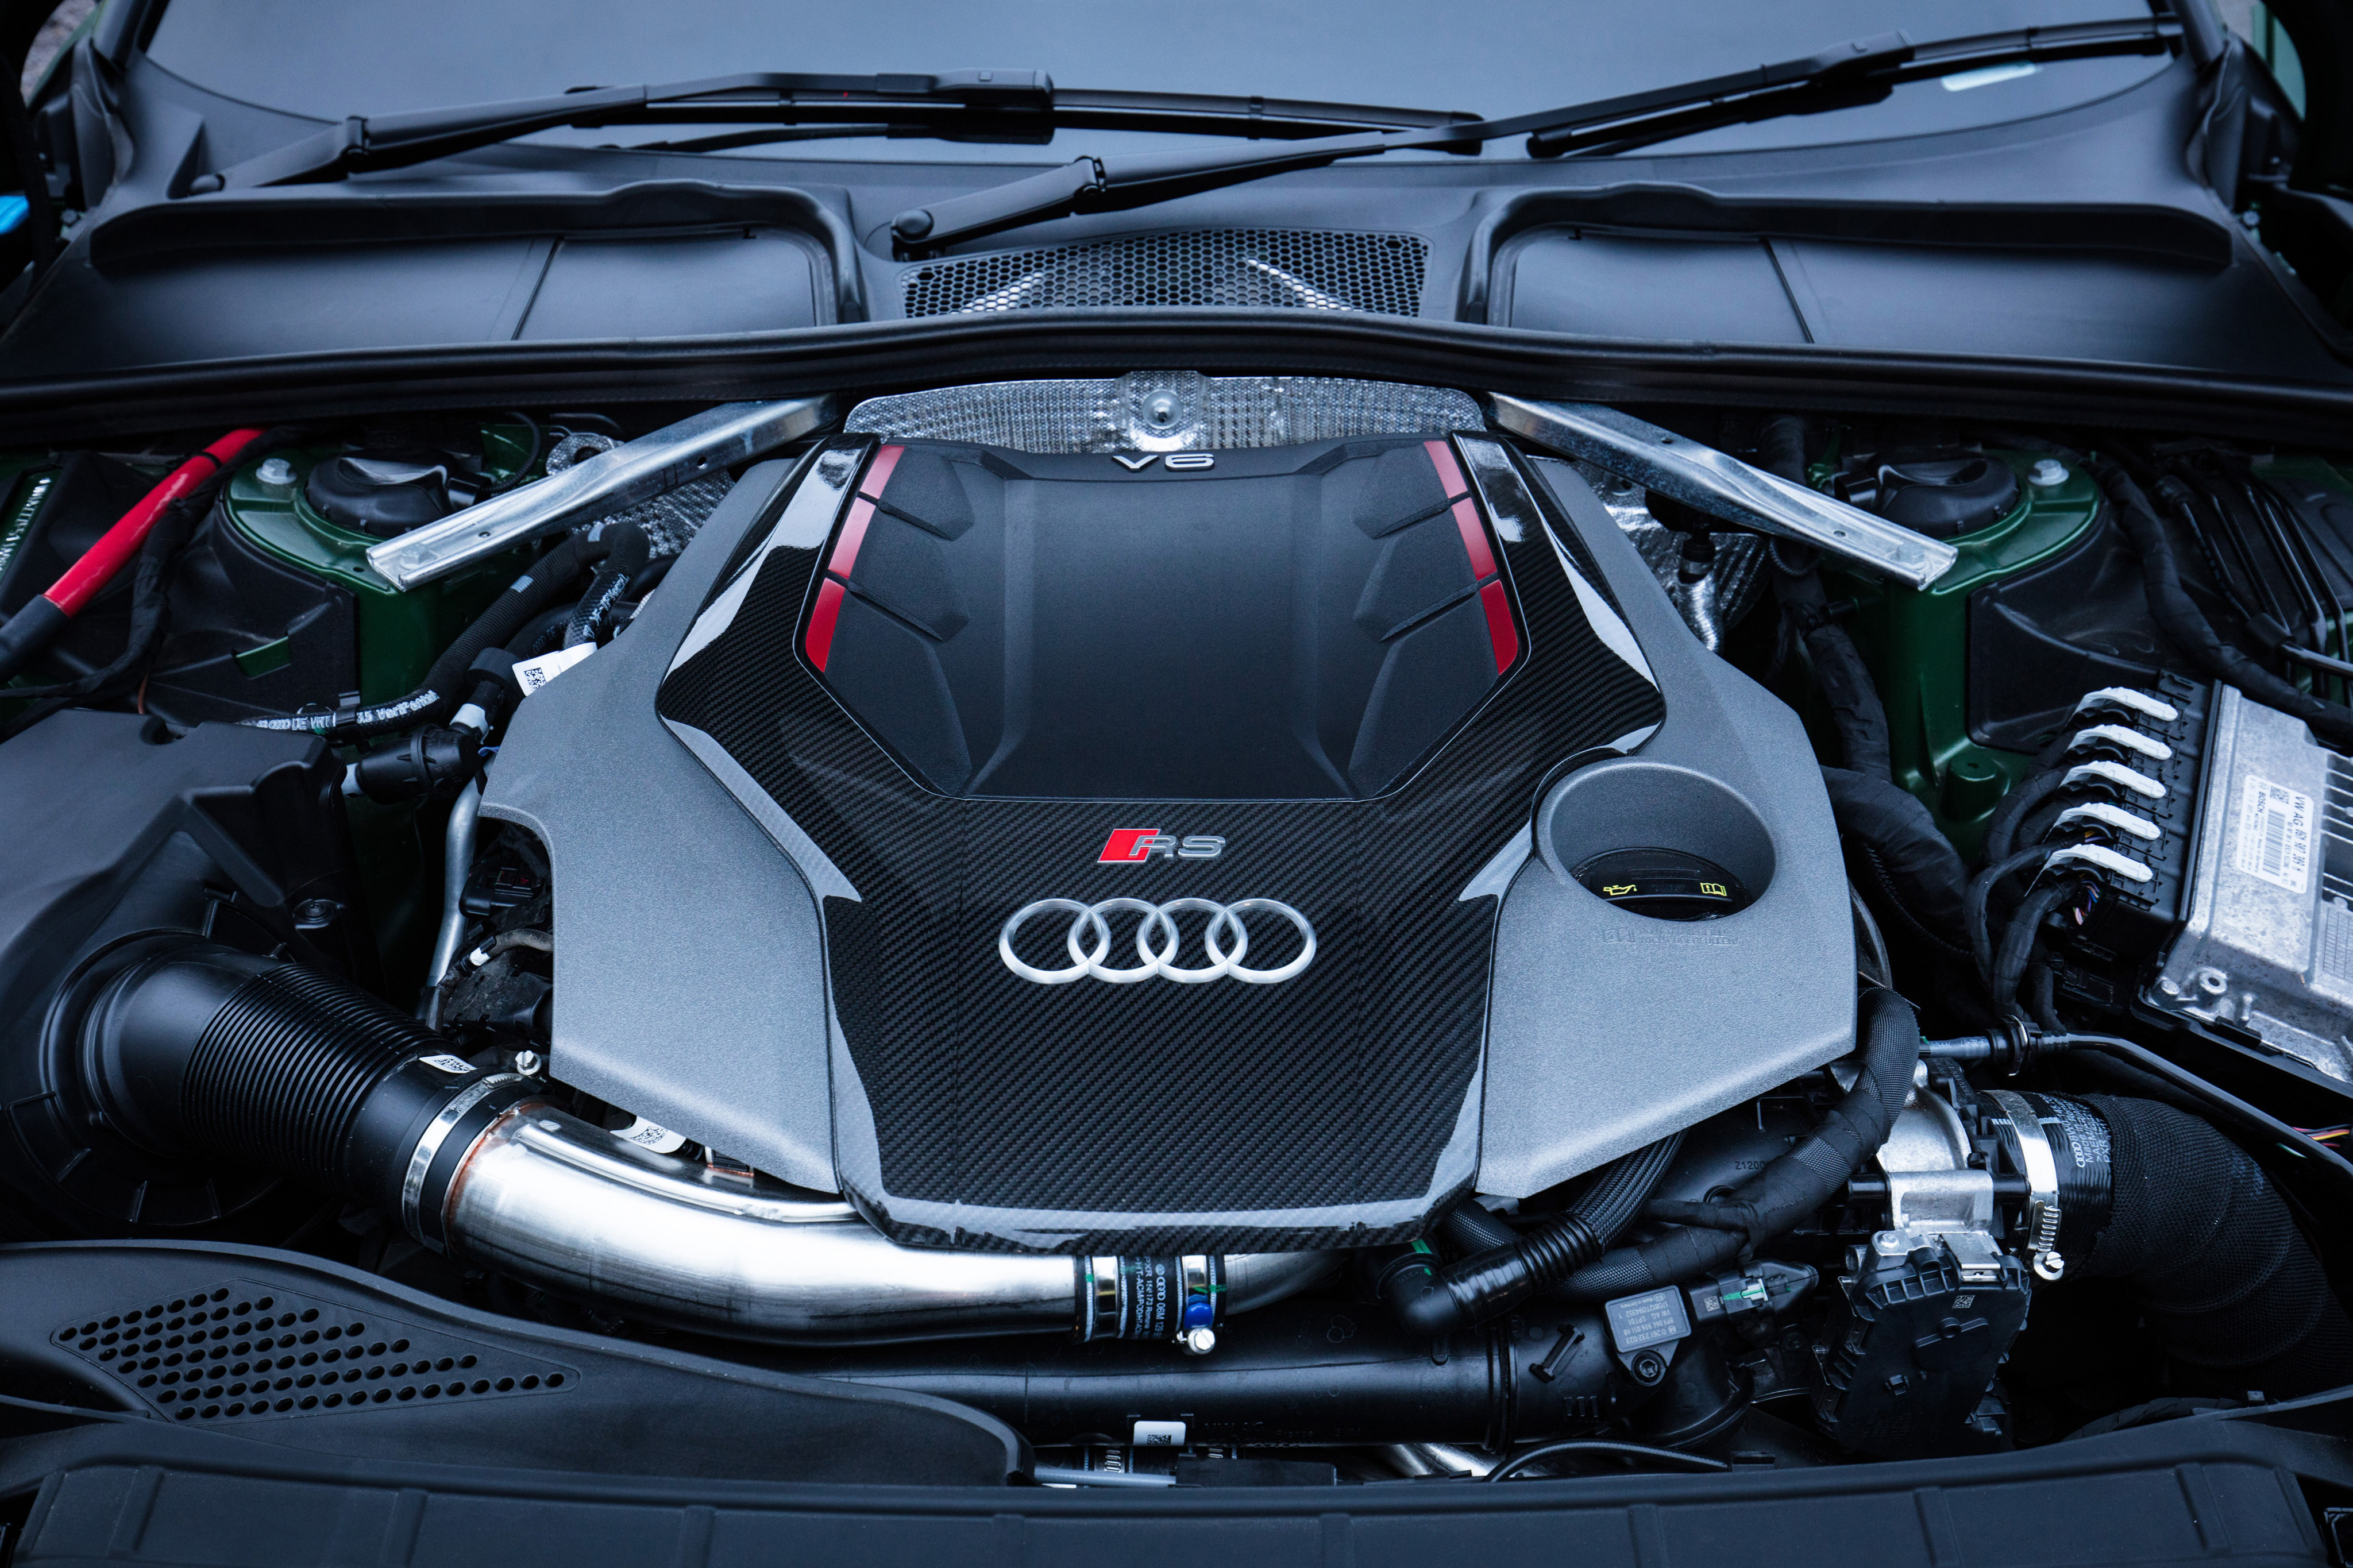 Audi Rs5 Engine Hd Cars 4k Wallpapers Images Backgrounds Photos